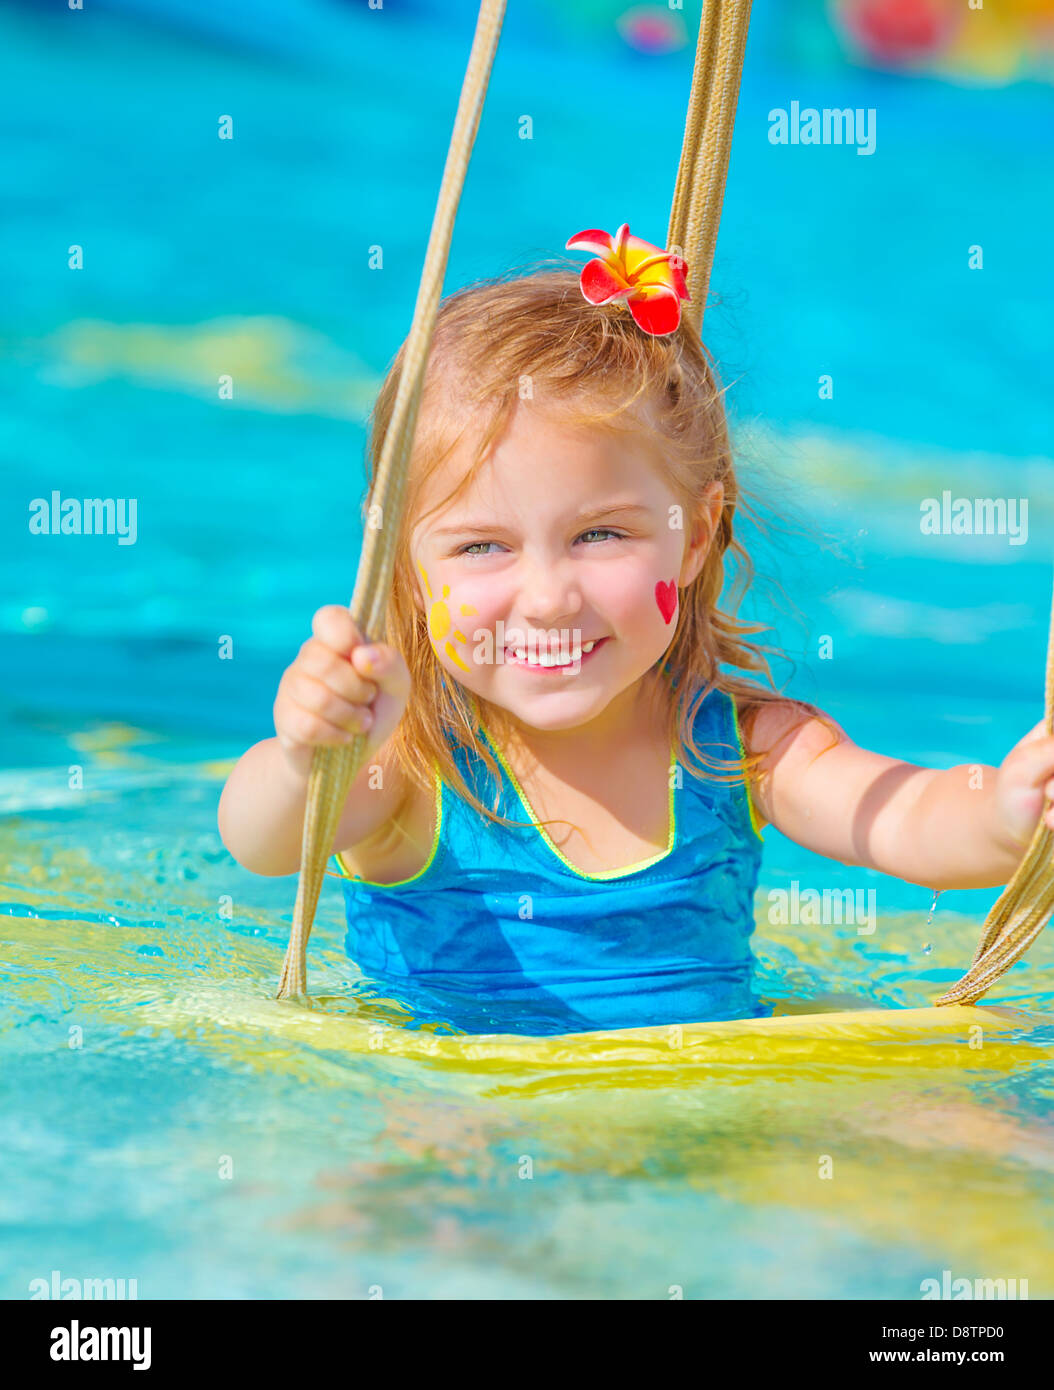 Cute happy girl enjoying summer holiday in the pool, having fun on water swing, red frangipani flower in hair, red - Stock Image